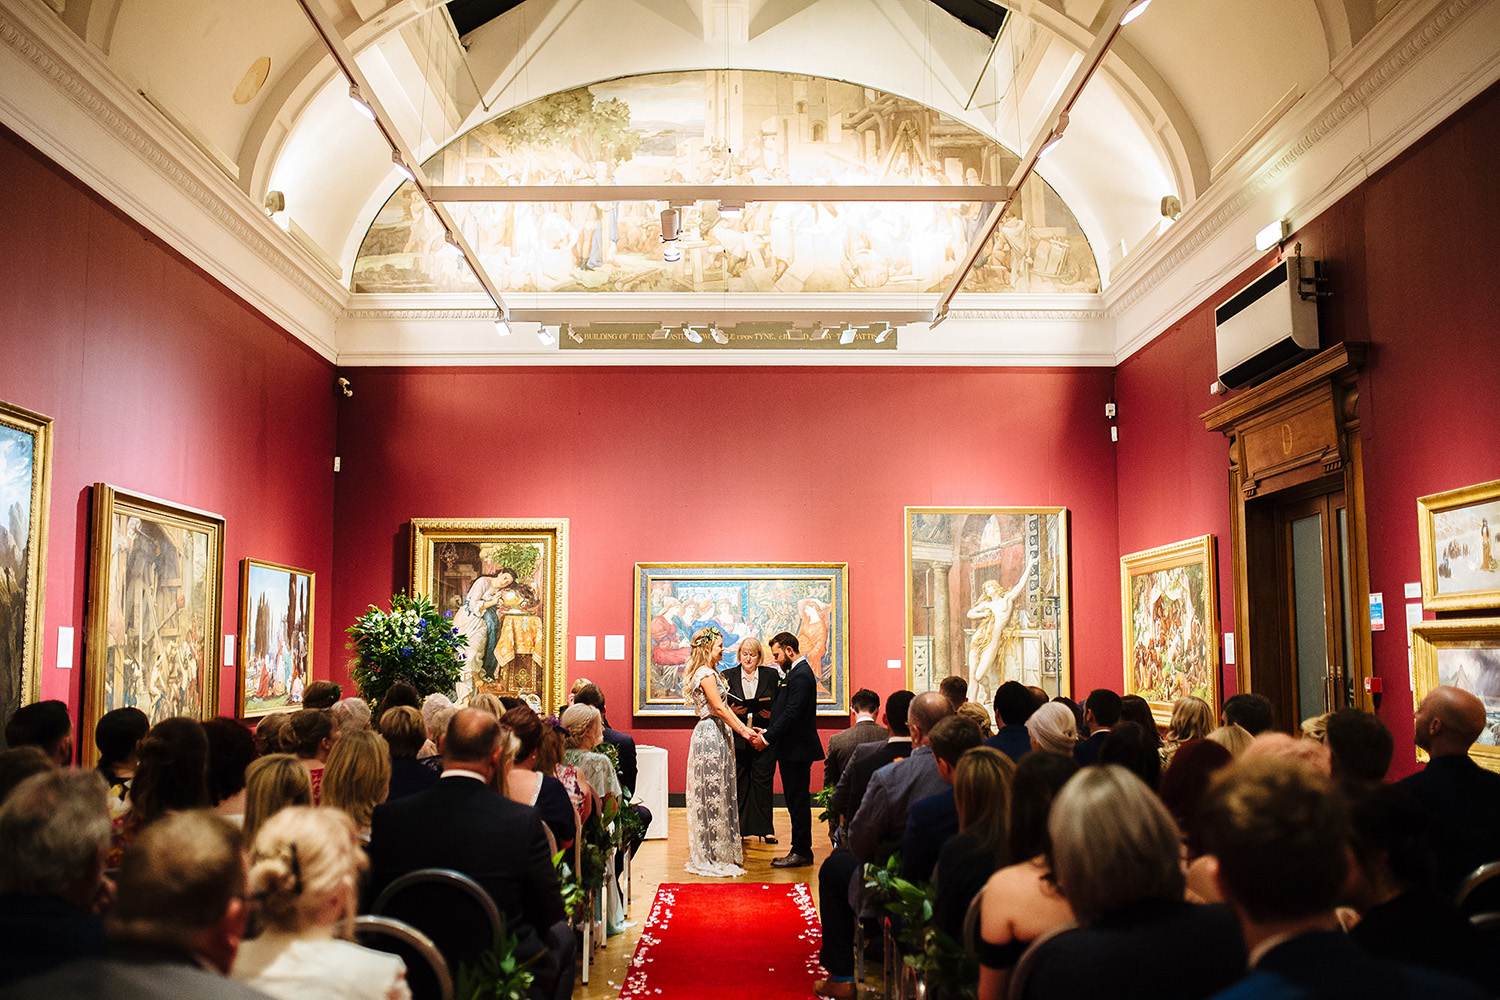 LAING ART GALLERY NEWCASTLE WEDDING PHOTOGRAPHY 68.JPG